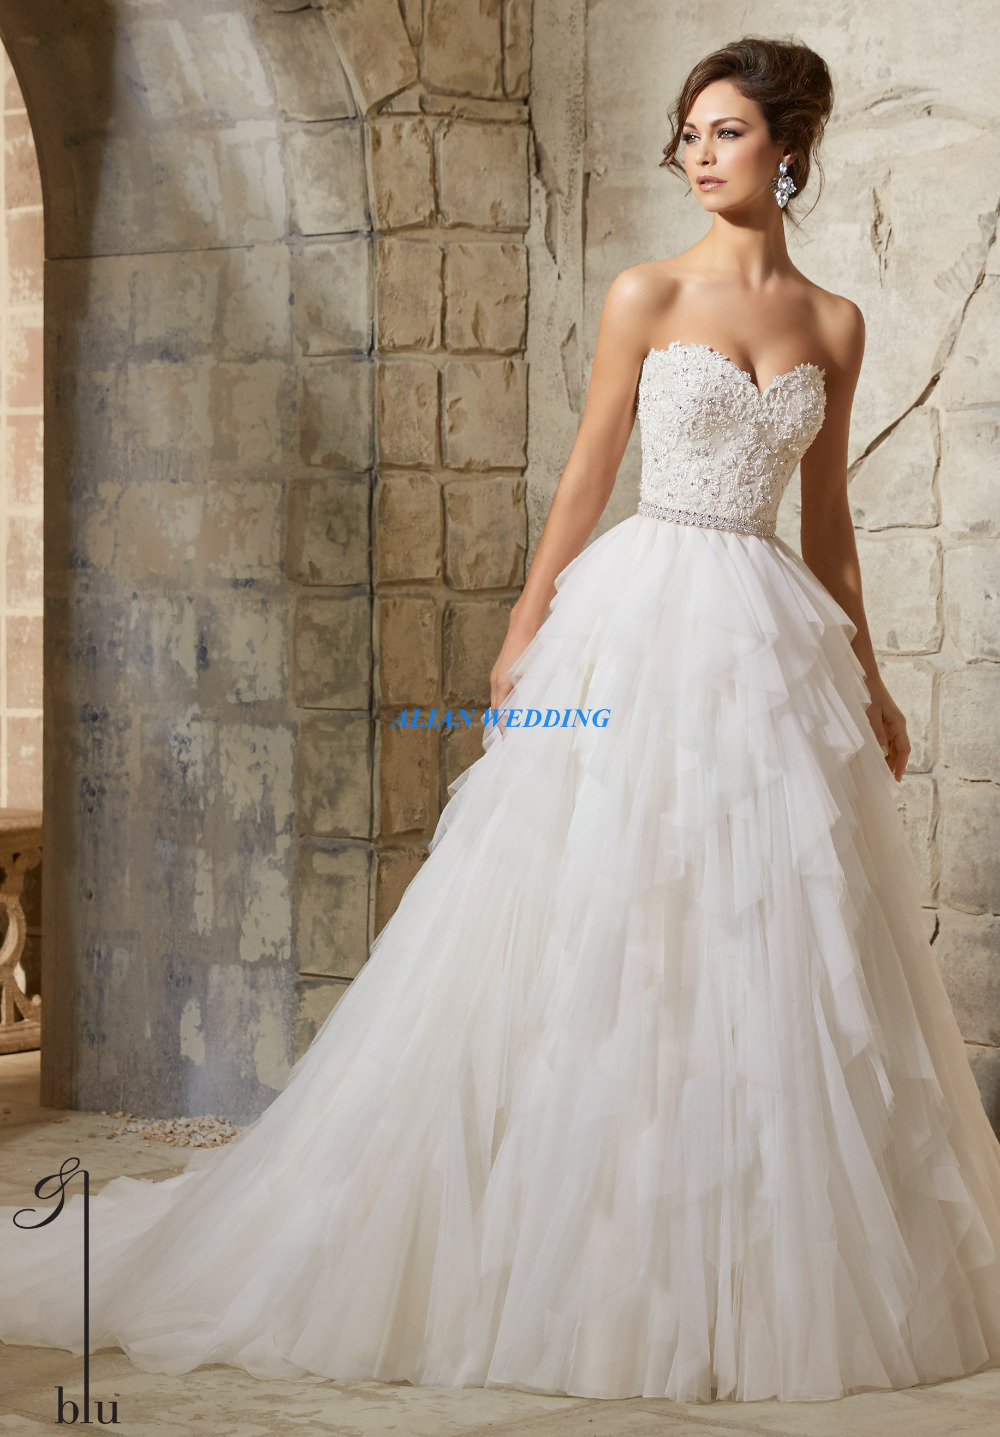 wedding dresses flowy wedding dresses 25 Best Ideas about Wedding Dresses on Pinterest Weding dresses Weeding dresses and Pretty wedding dresses